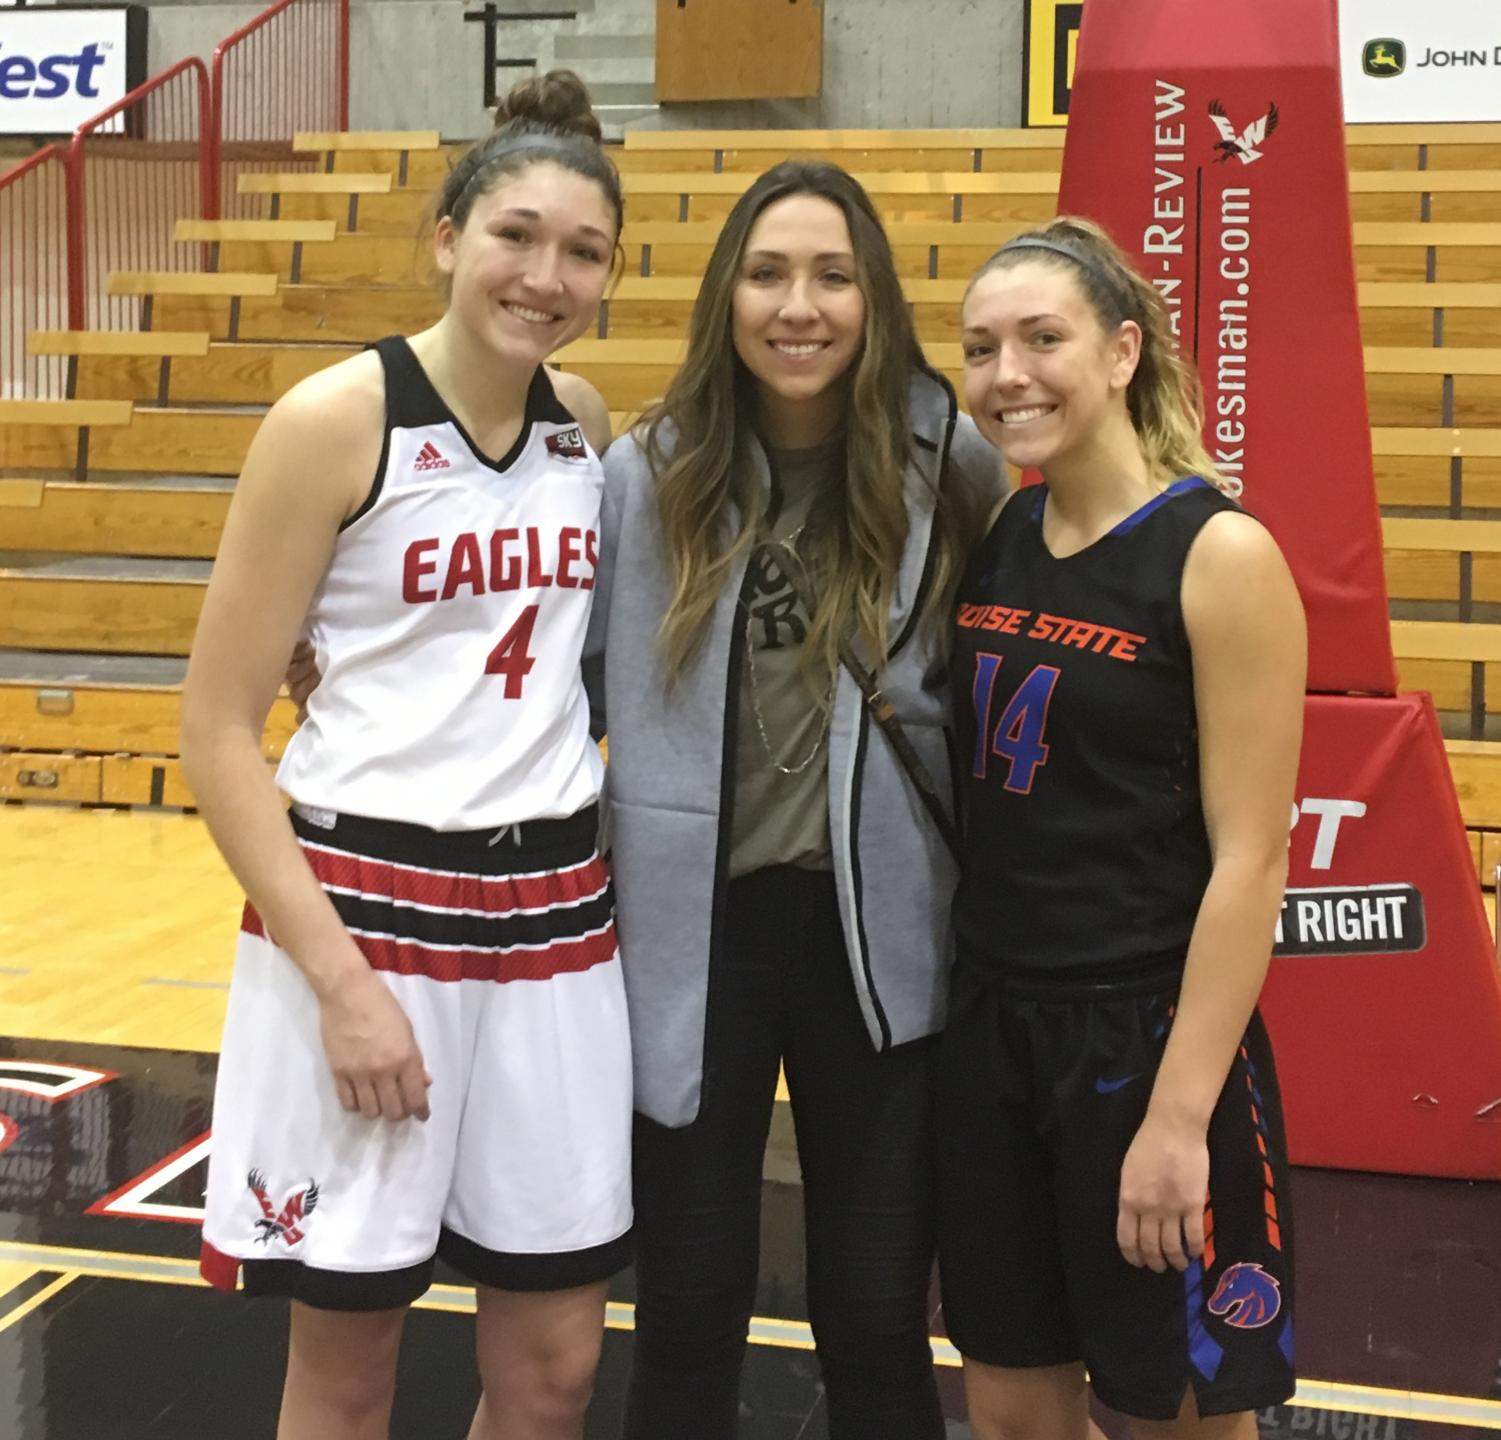 (left to right) Delaney, Hayley and Braydey Hodgins after EWU's loss to Boise State on Dec. 3. Braydey is a sophomore guard for Boise State, Hayley is EWU's all-time leading scorer and Delaney is No. 3 on the program's scoring list. | Jeremy Burnham for The Easterner